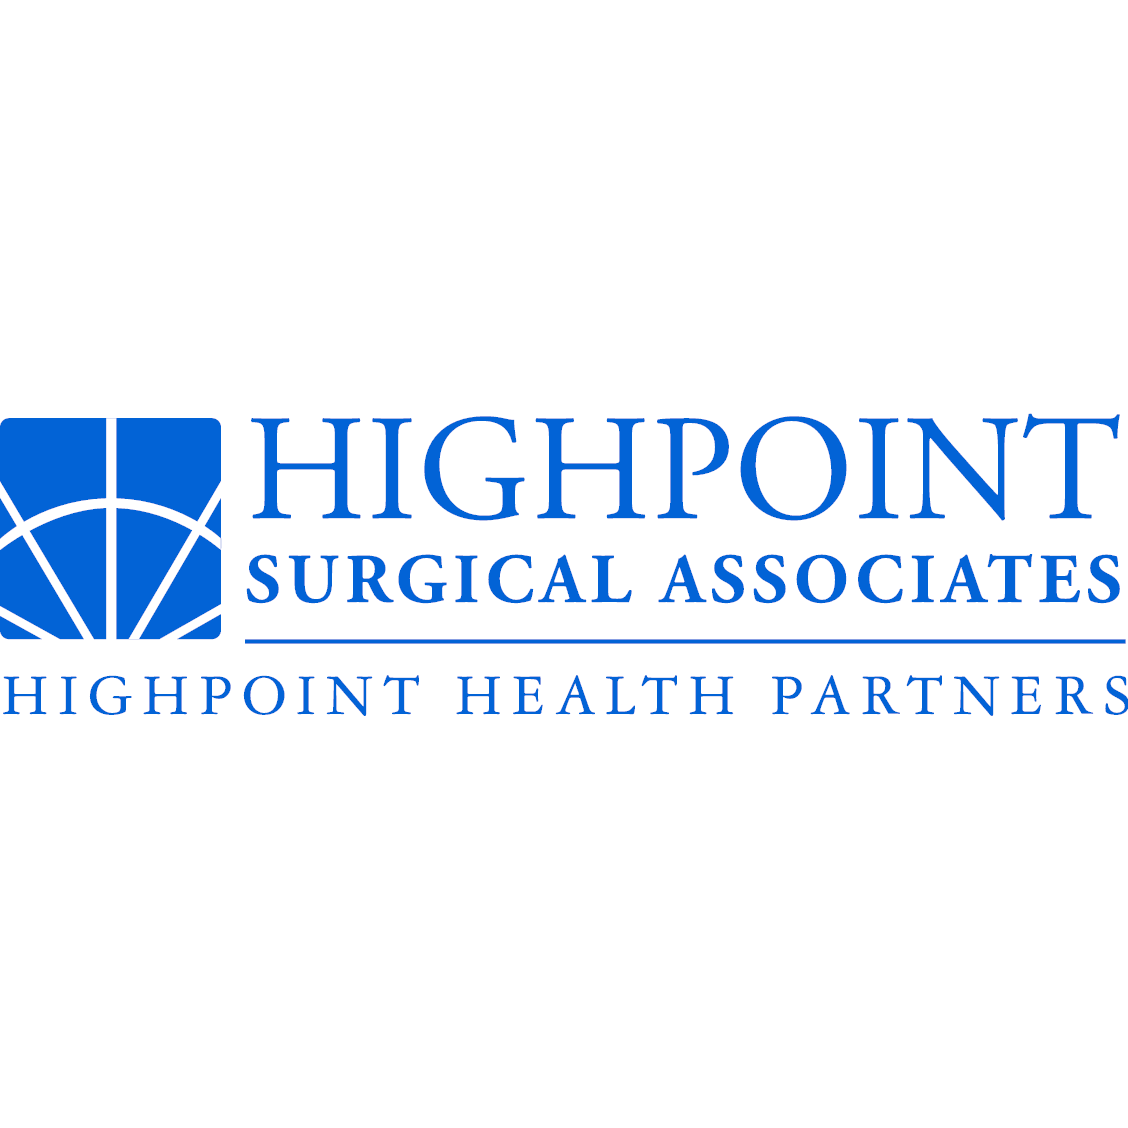 HighPoint Surgical Associates, Brian K. Reed, MD - General Surgery